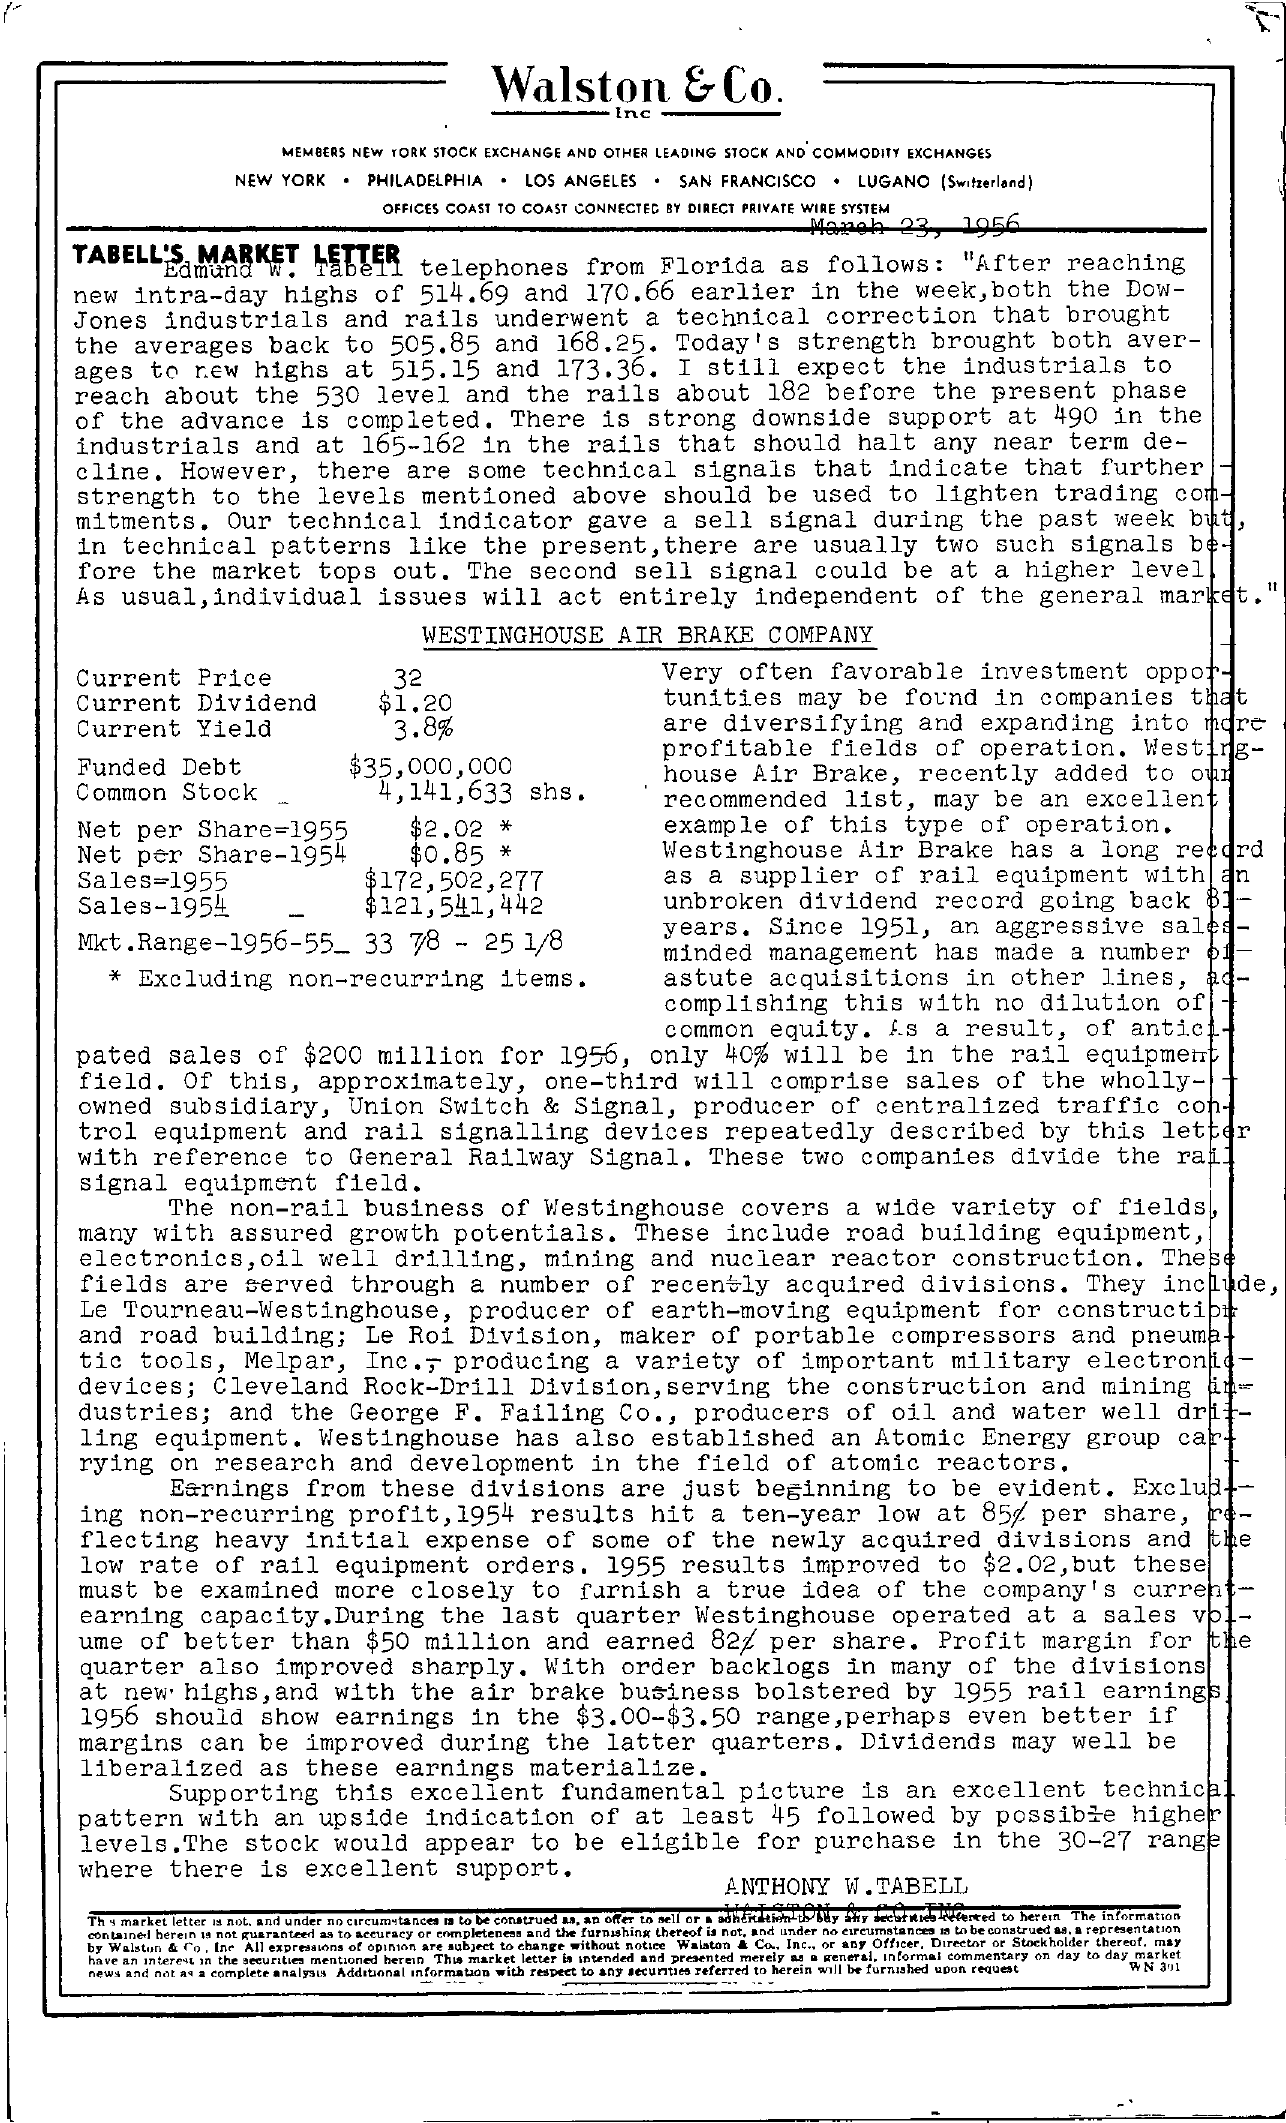 Tabell's Market Letter - March 23, 1956